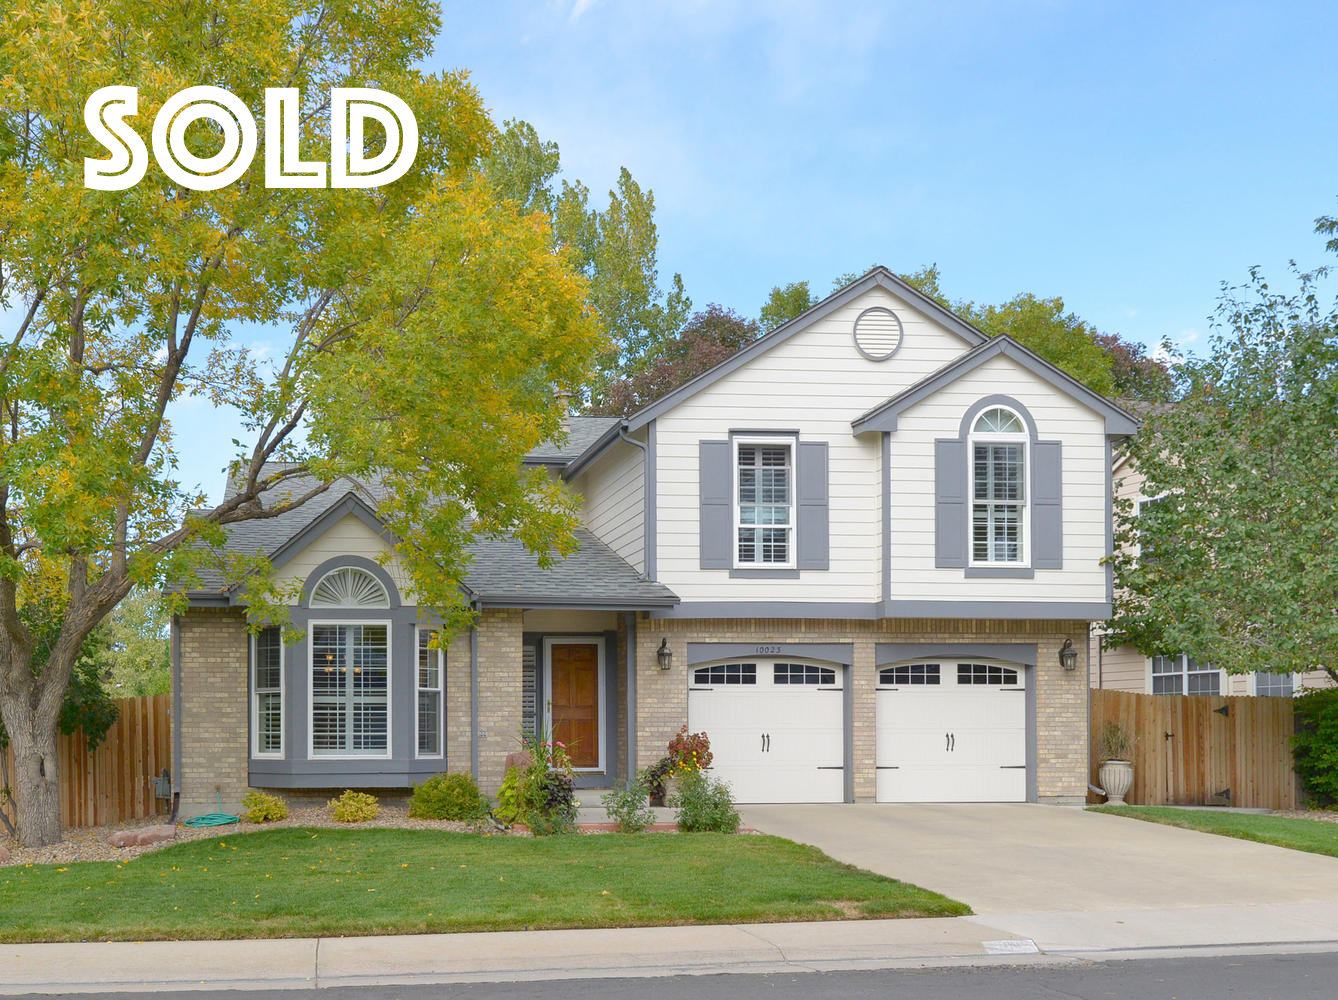 10023 Irving St, Westminster, CO